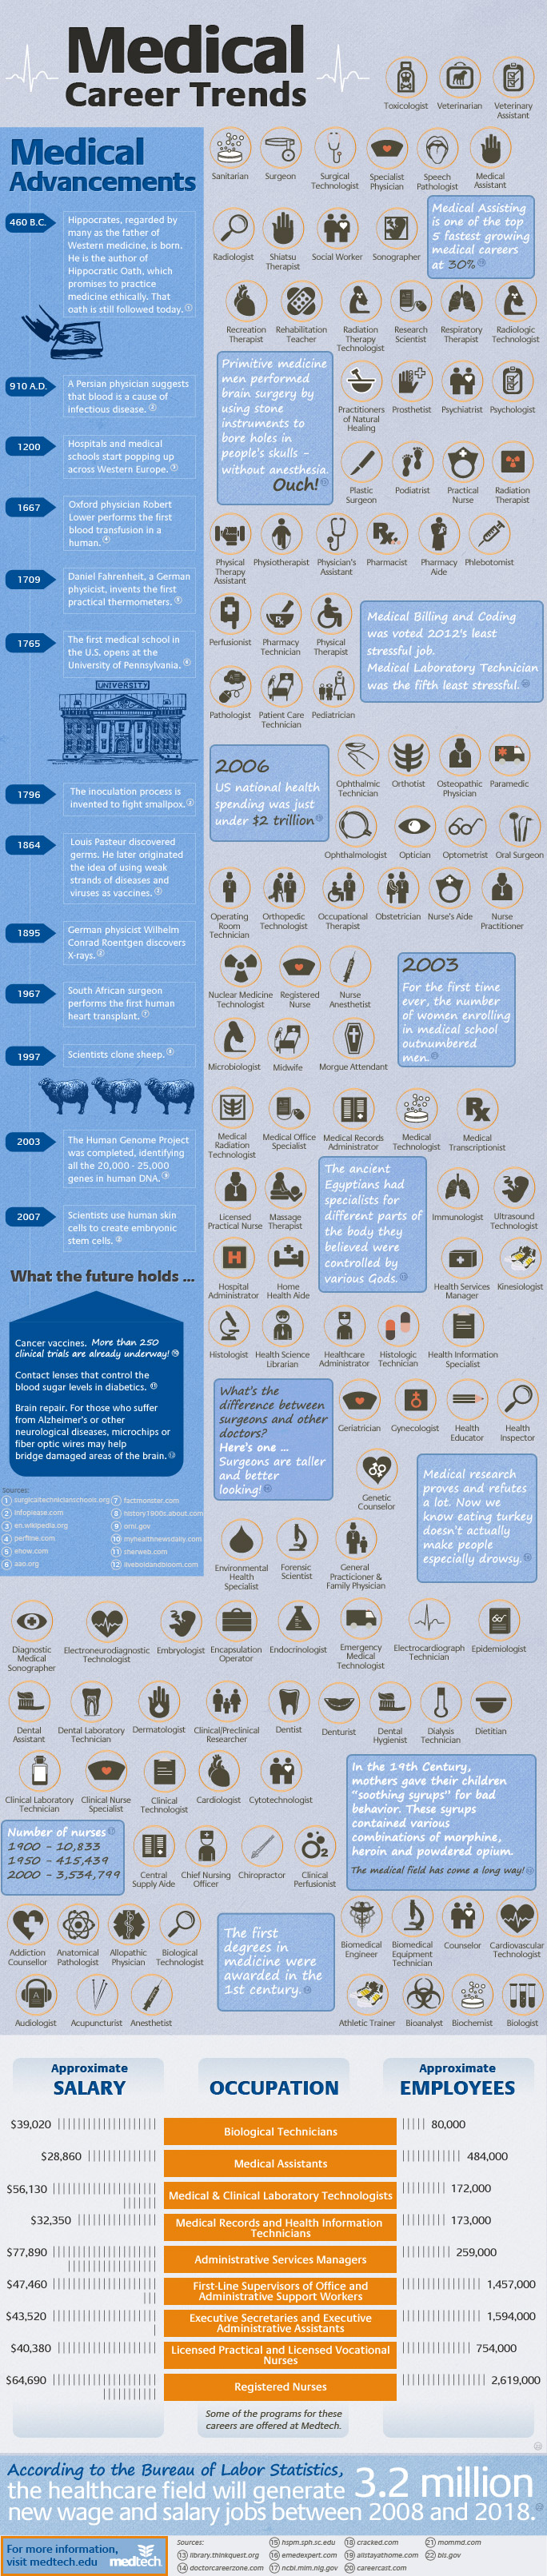 Medical Careers List >> Medical Career Trends Infographic Infographic List